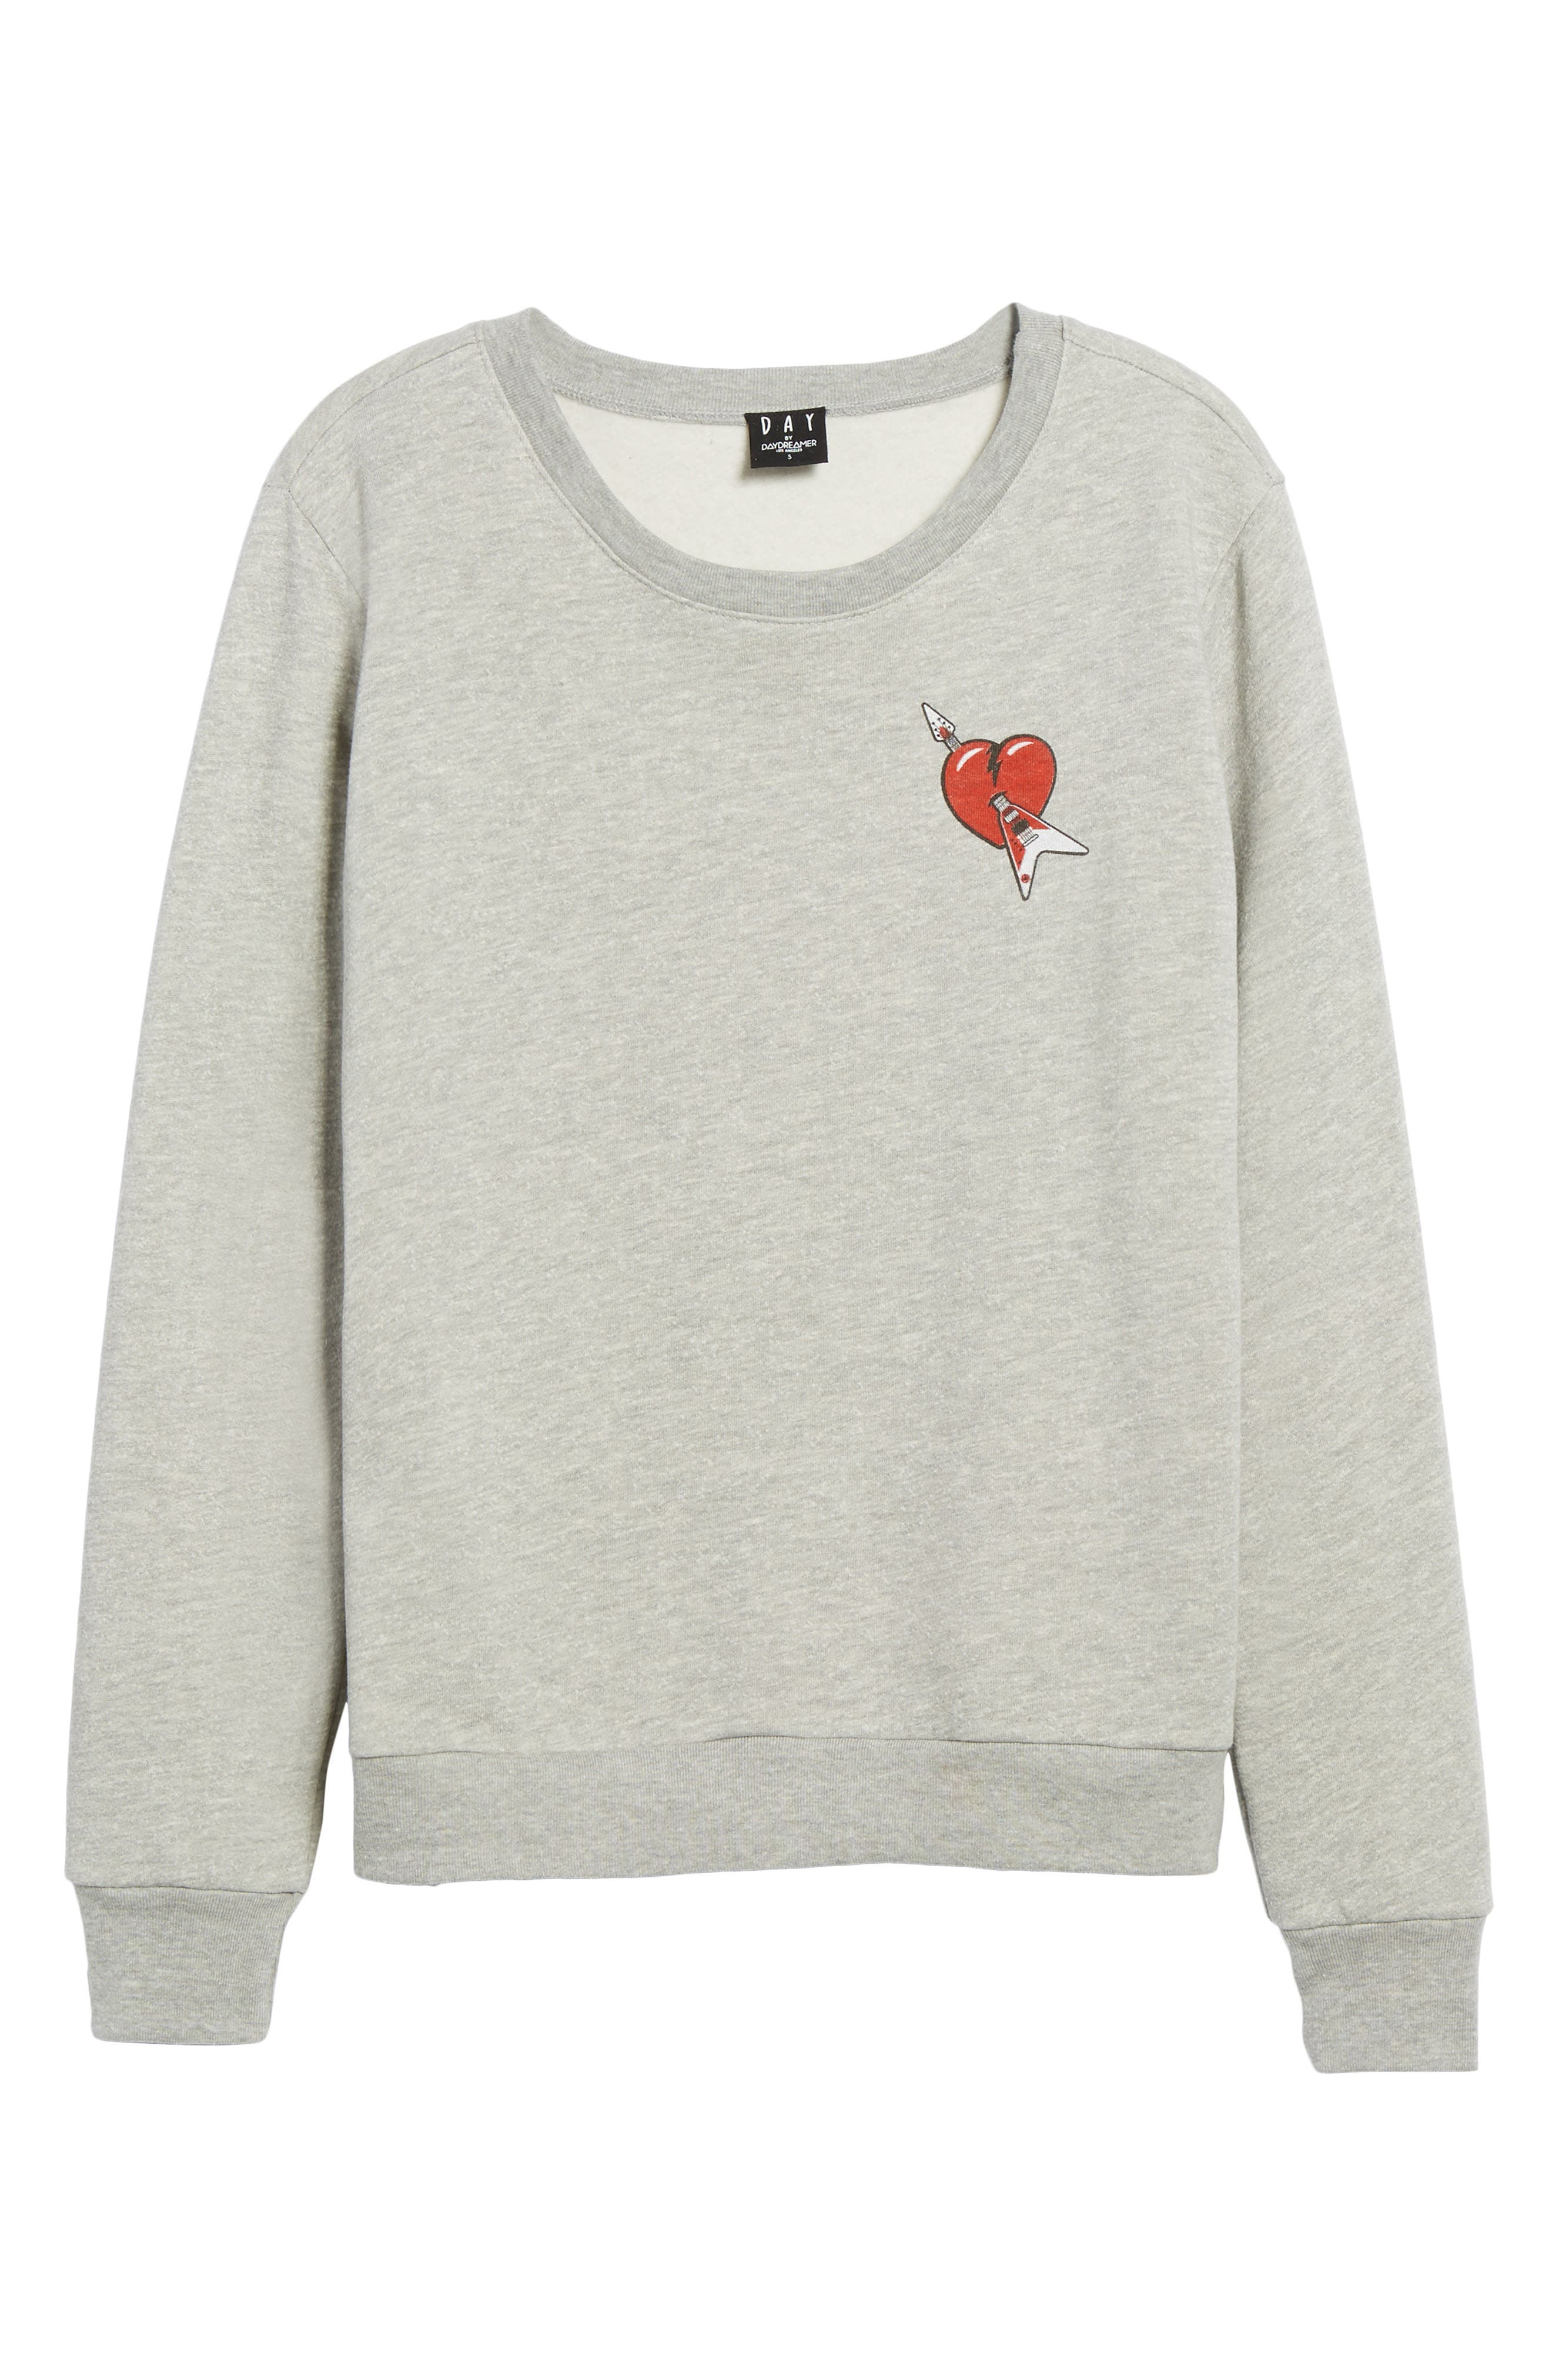 Tom Petty and the Heartbreakers Sweatshirt,                             Alternate thumbnail 6, color,                             020